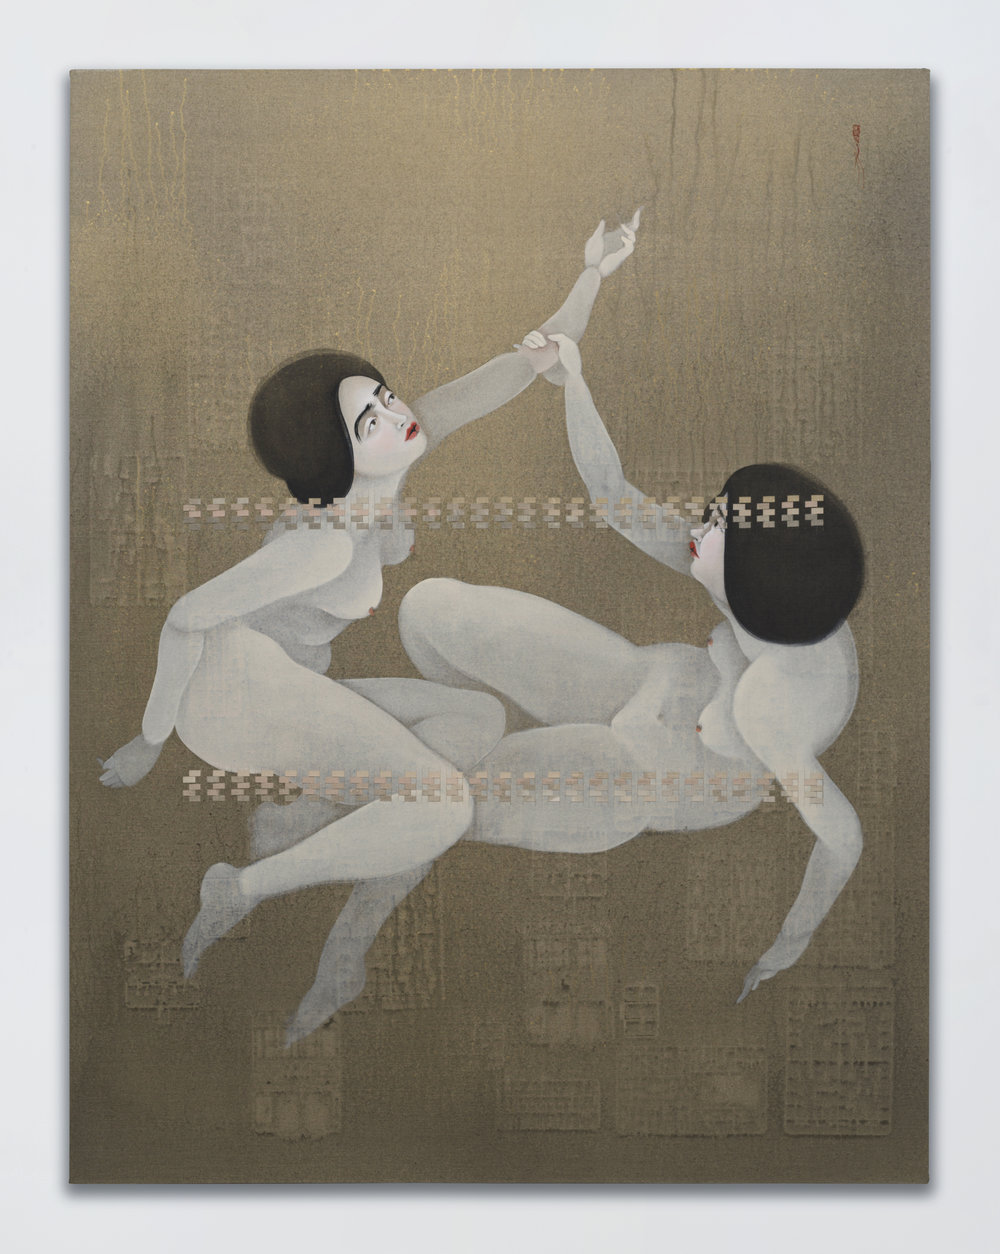 Hayv Kahraman -  Mnemonic Artifact 2 , 2017, oil on linen, 70 1/16 x 53 7/8 x 4 1/8 inches. © Hayv Kahraman. Courtesy of the artist and Jack Shainman Gallery, New York.